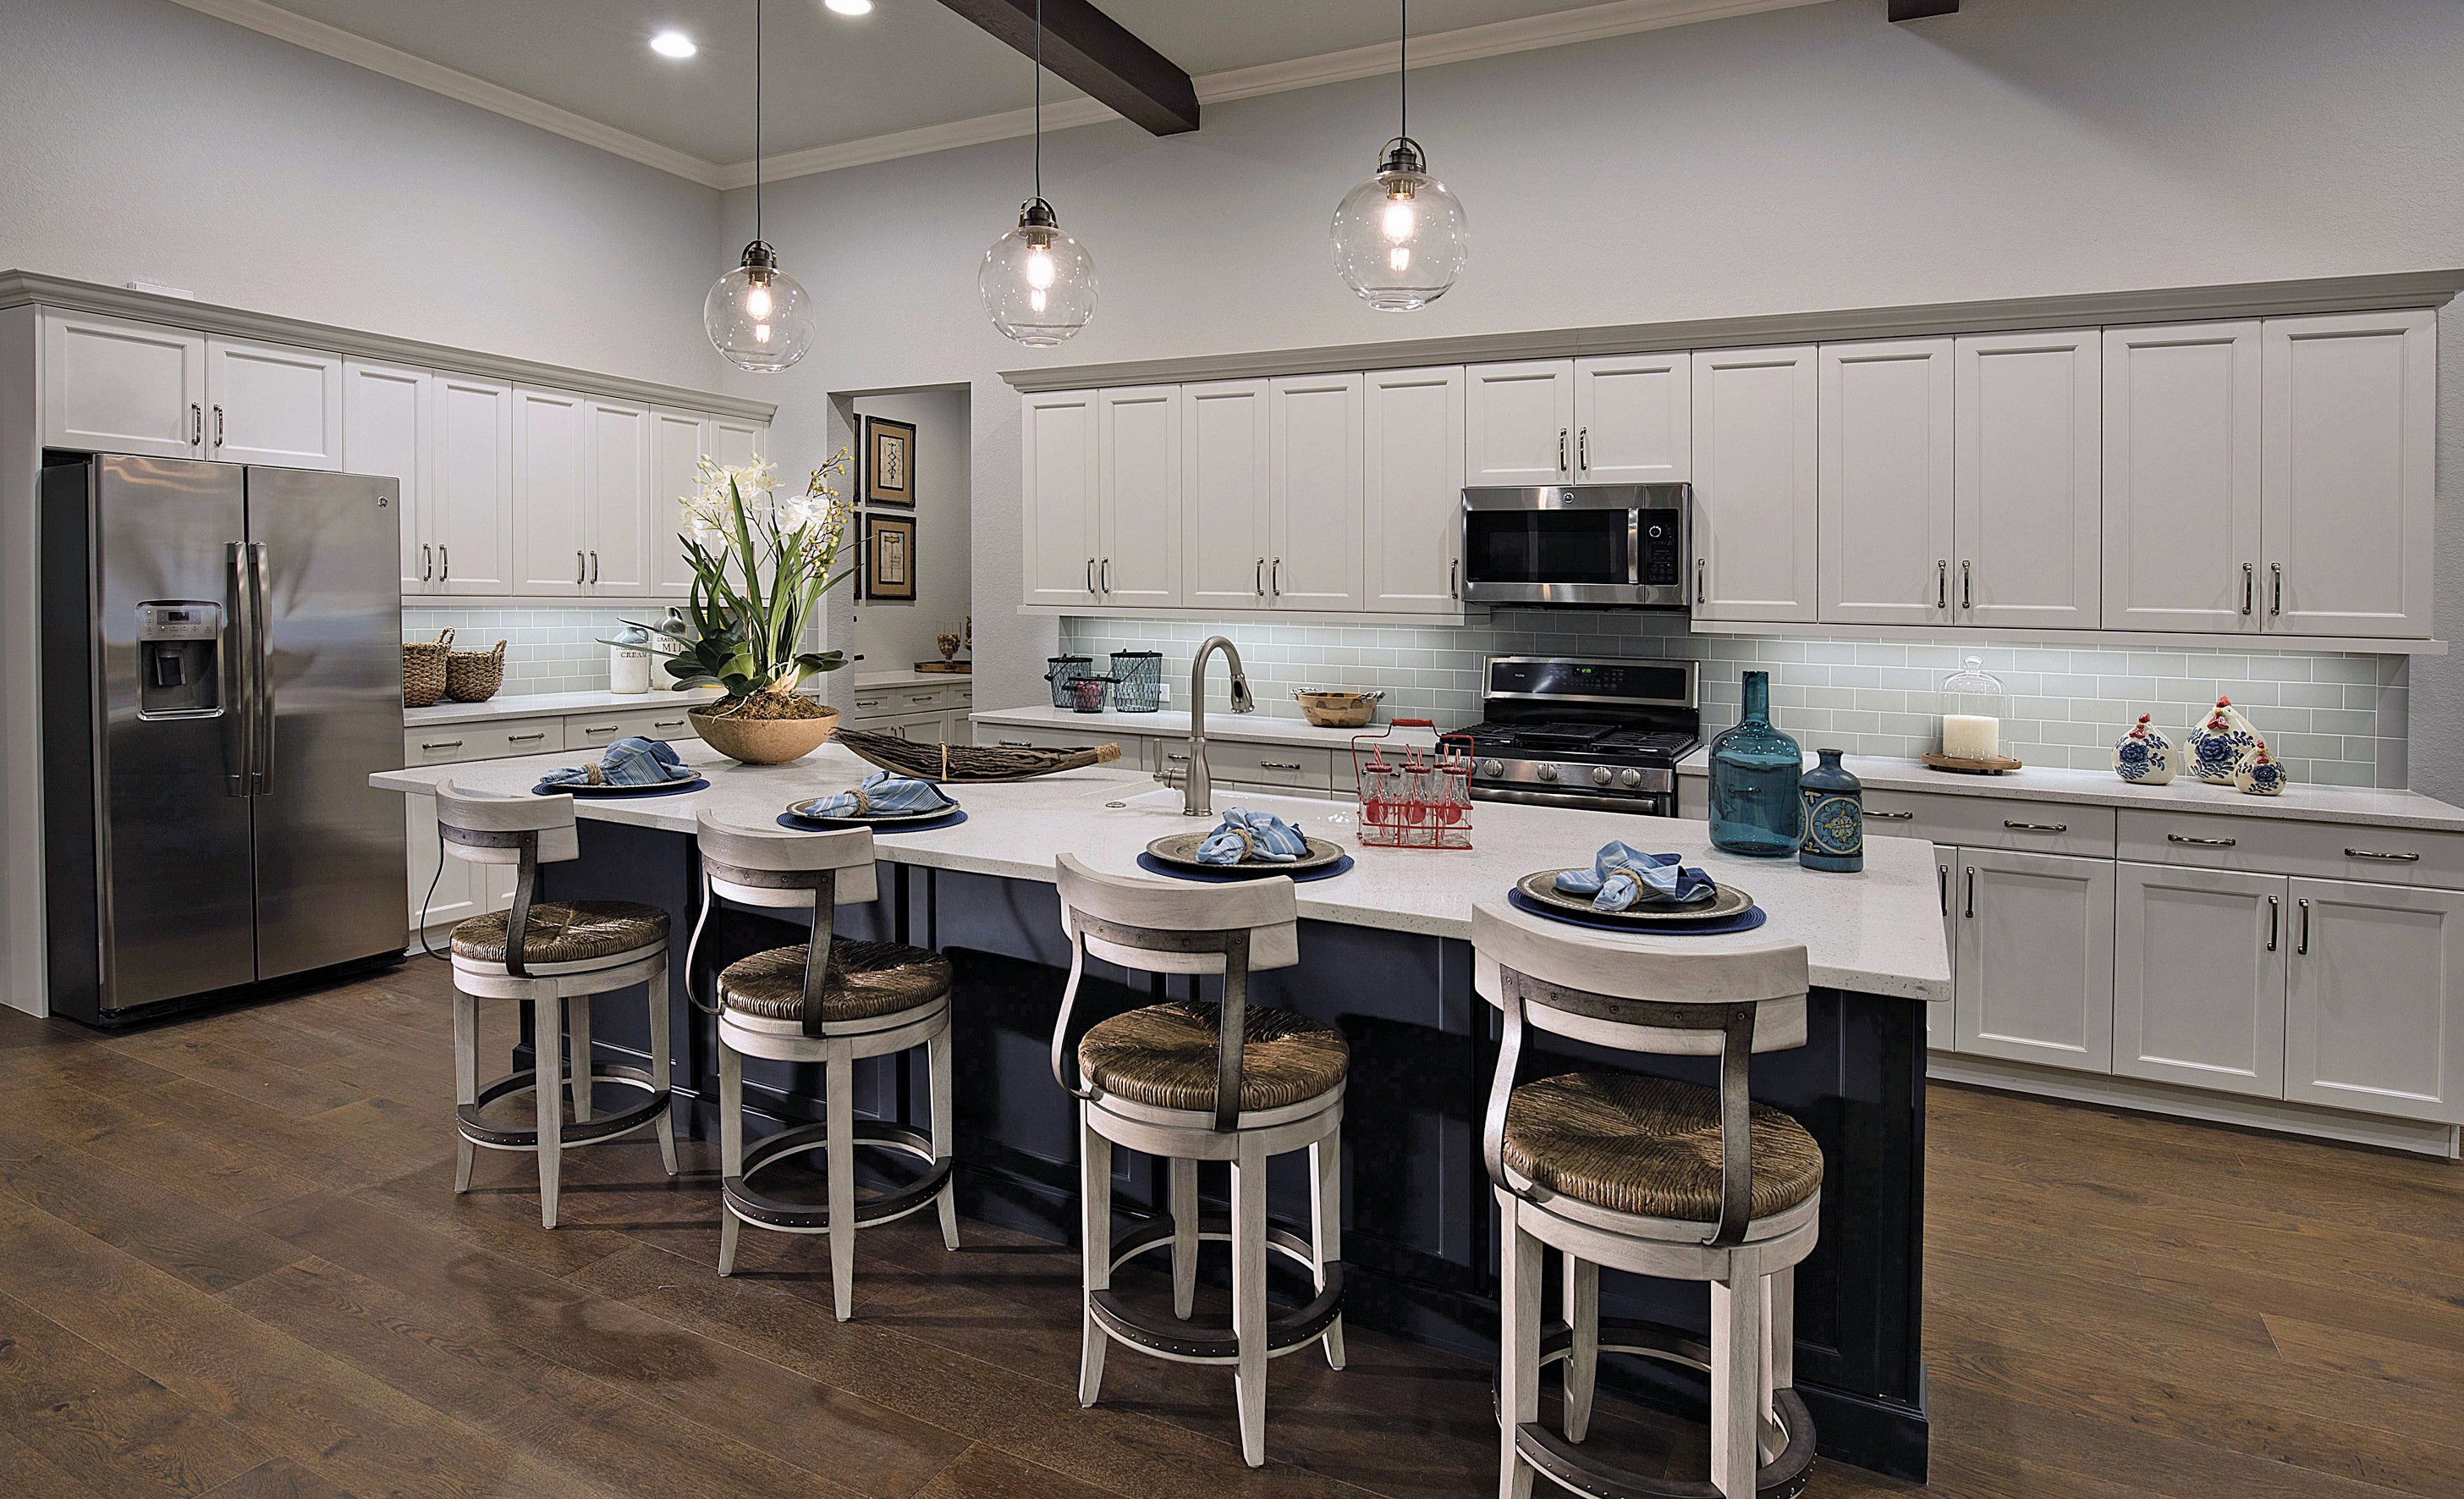 Stock s Spring Tour of Homes event this weekend across Southwest